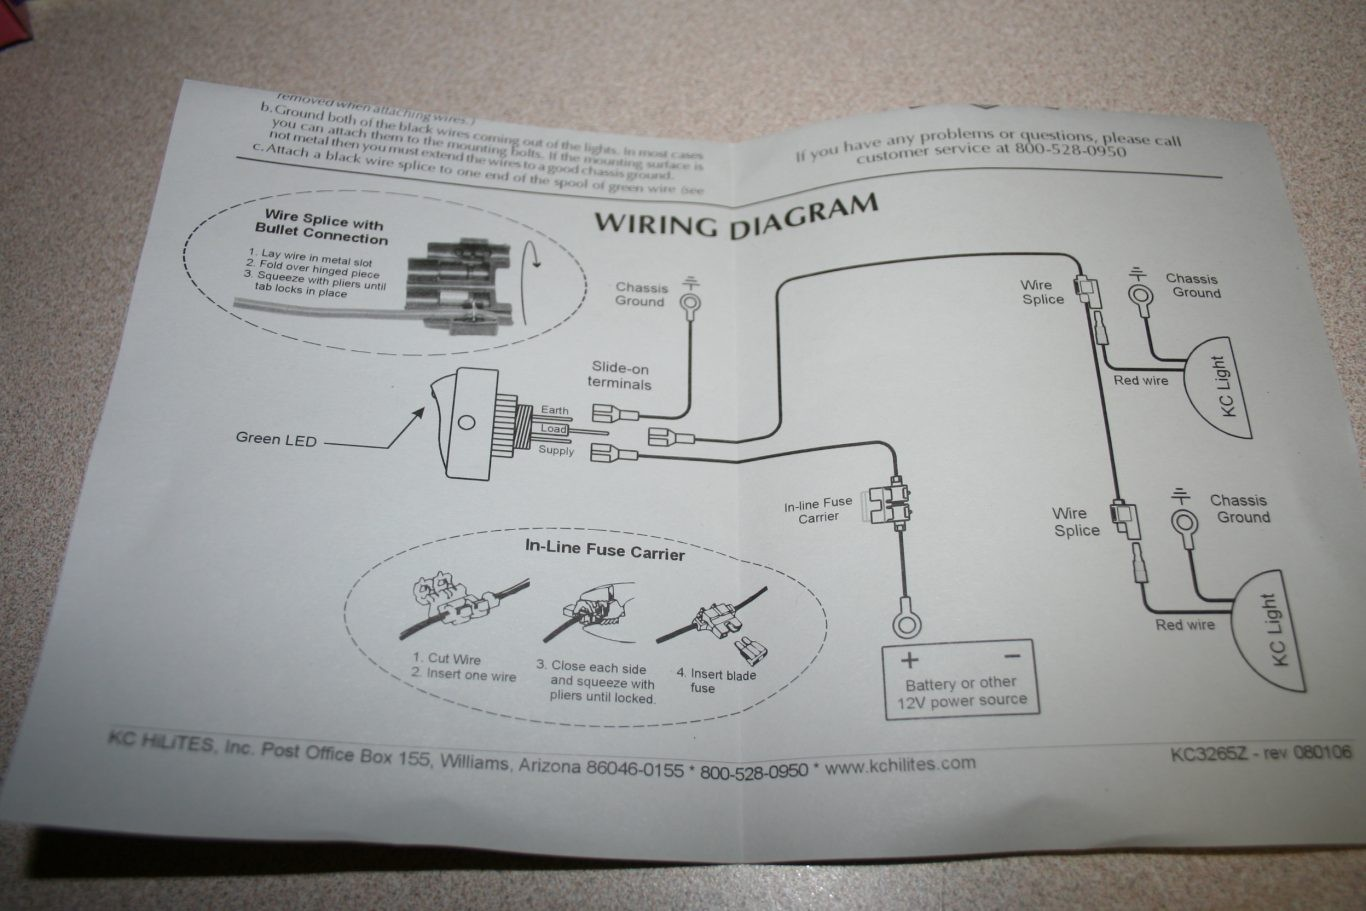 Wiring froadhts With Stock Foglight Harness In Kc Foght Diagram Fog Light Free Diagrams Wires Electrical